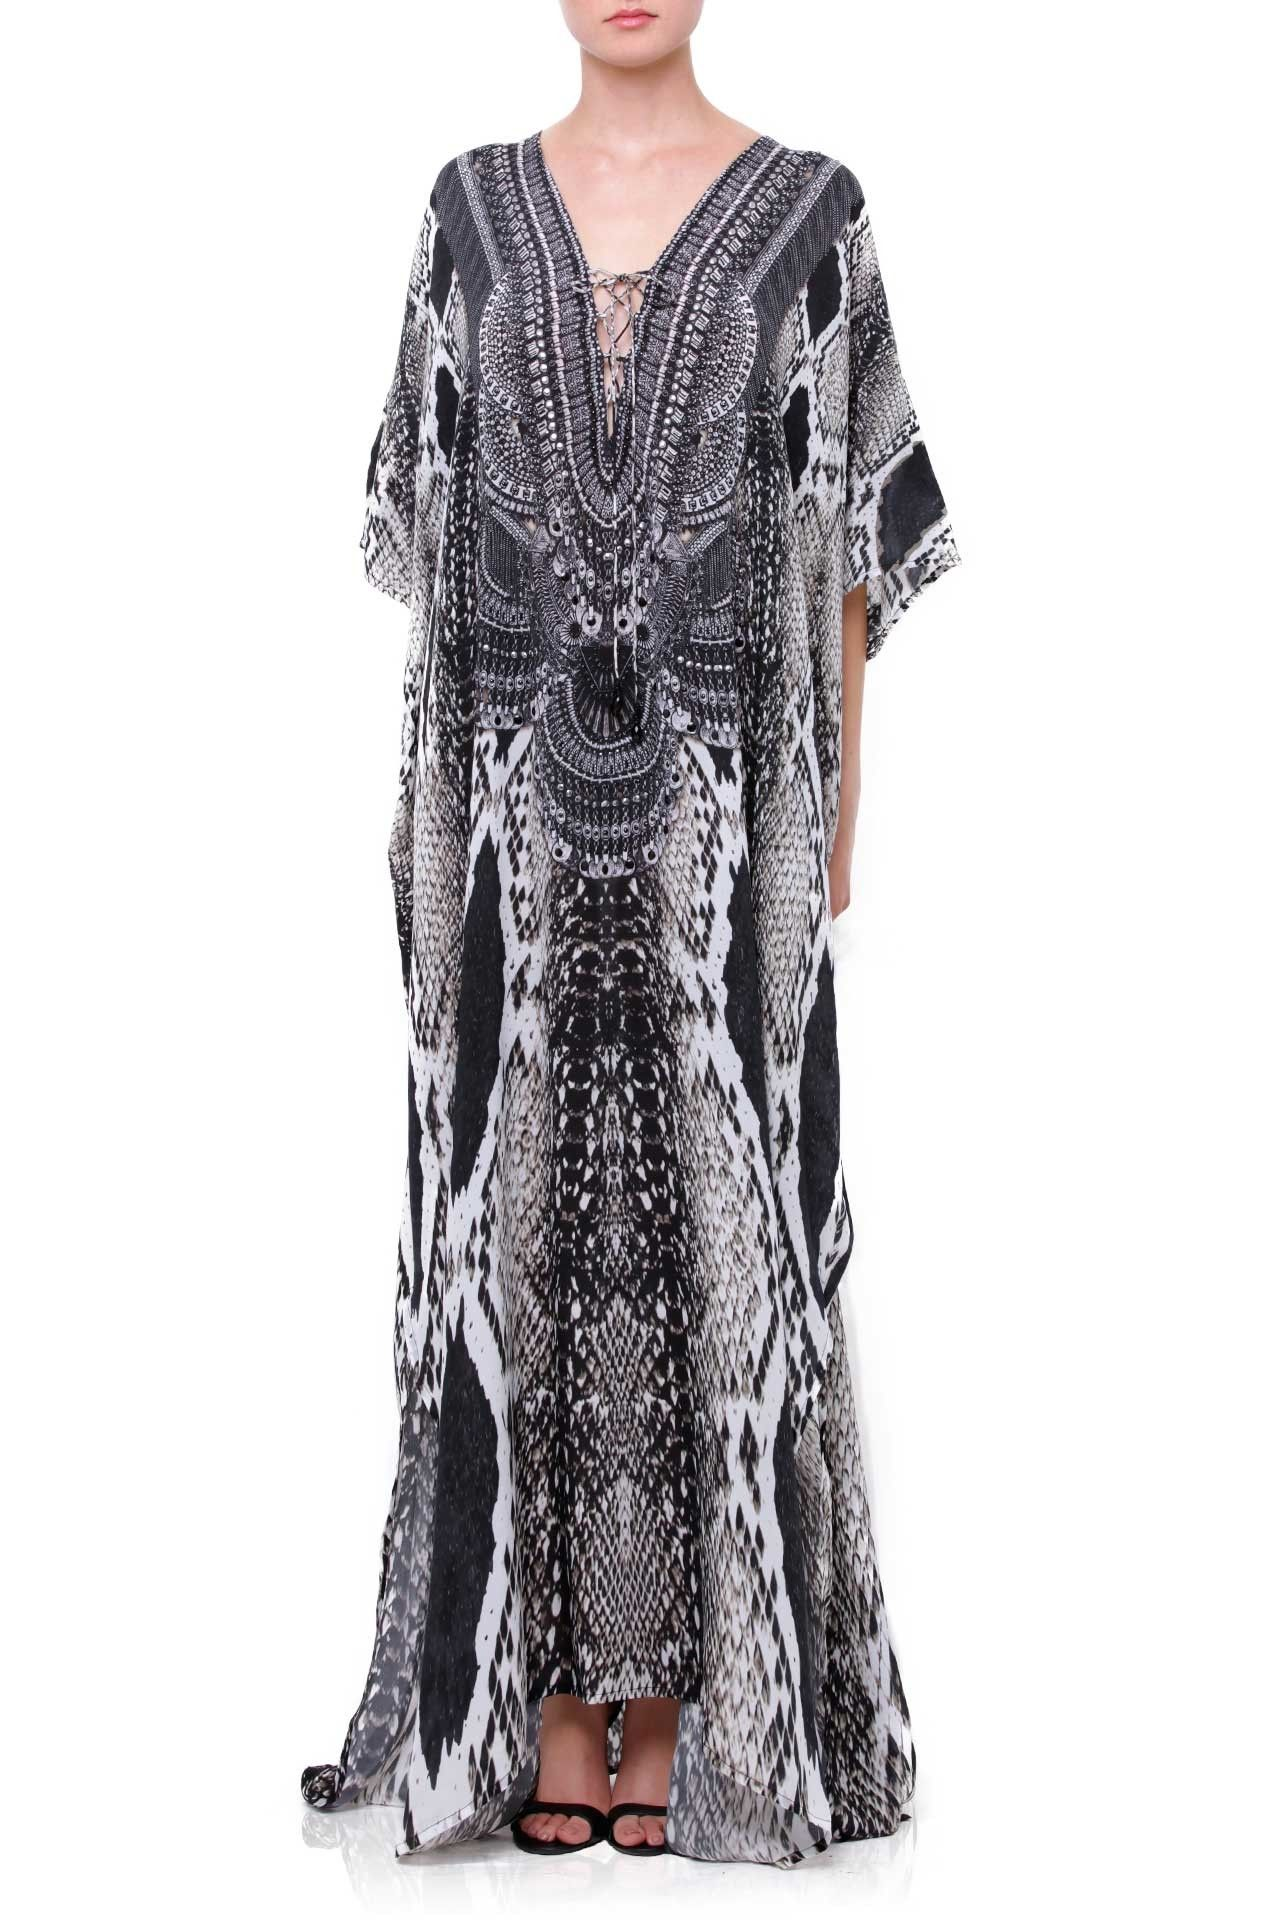 Must Have Kaftans 2018. Snake Print Kaftan Dresses  Luxury Designer Dresses   Up to 50% Off Select Styles - Shahida Parides® 87c68786df8